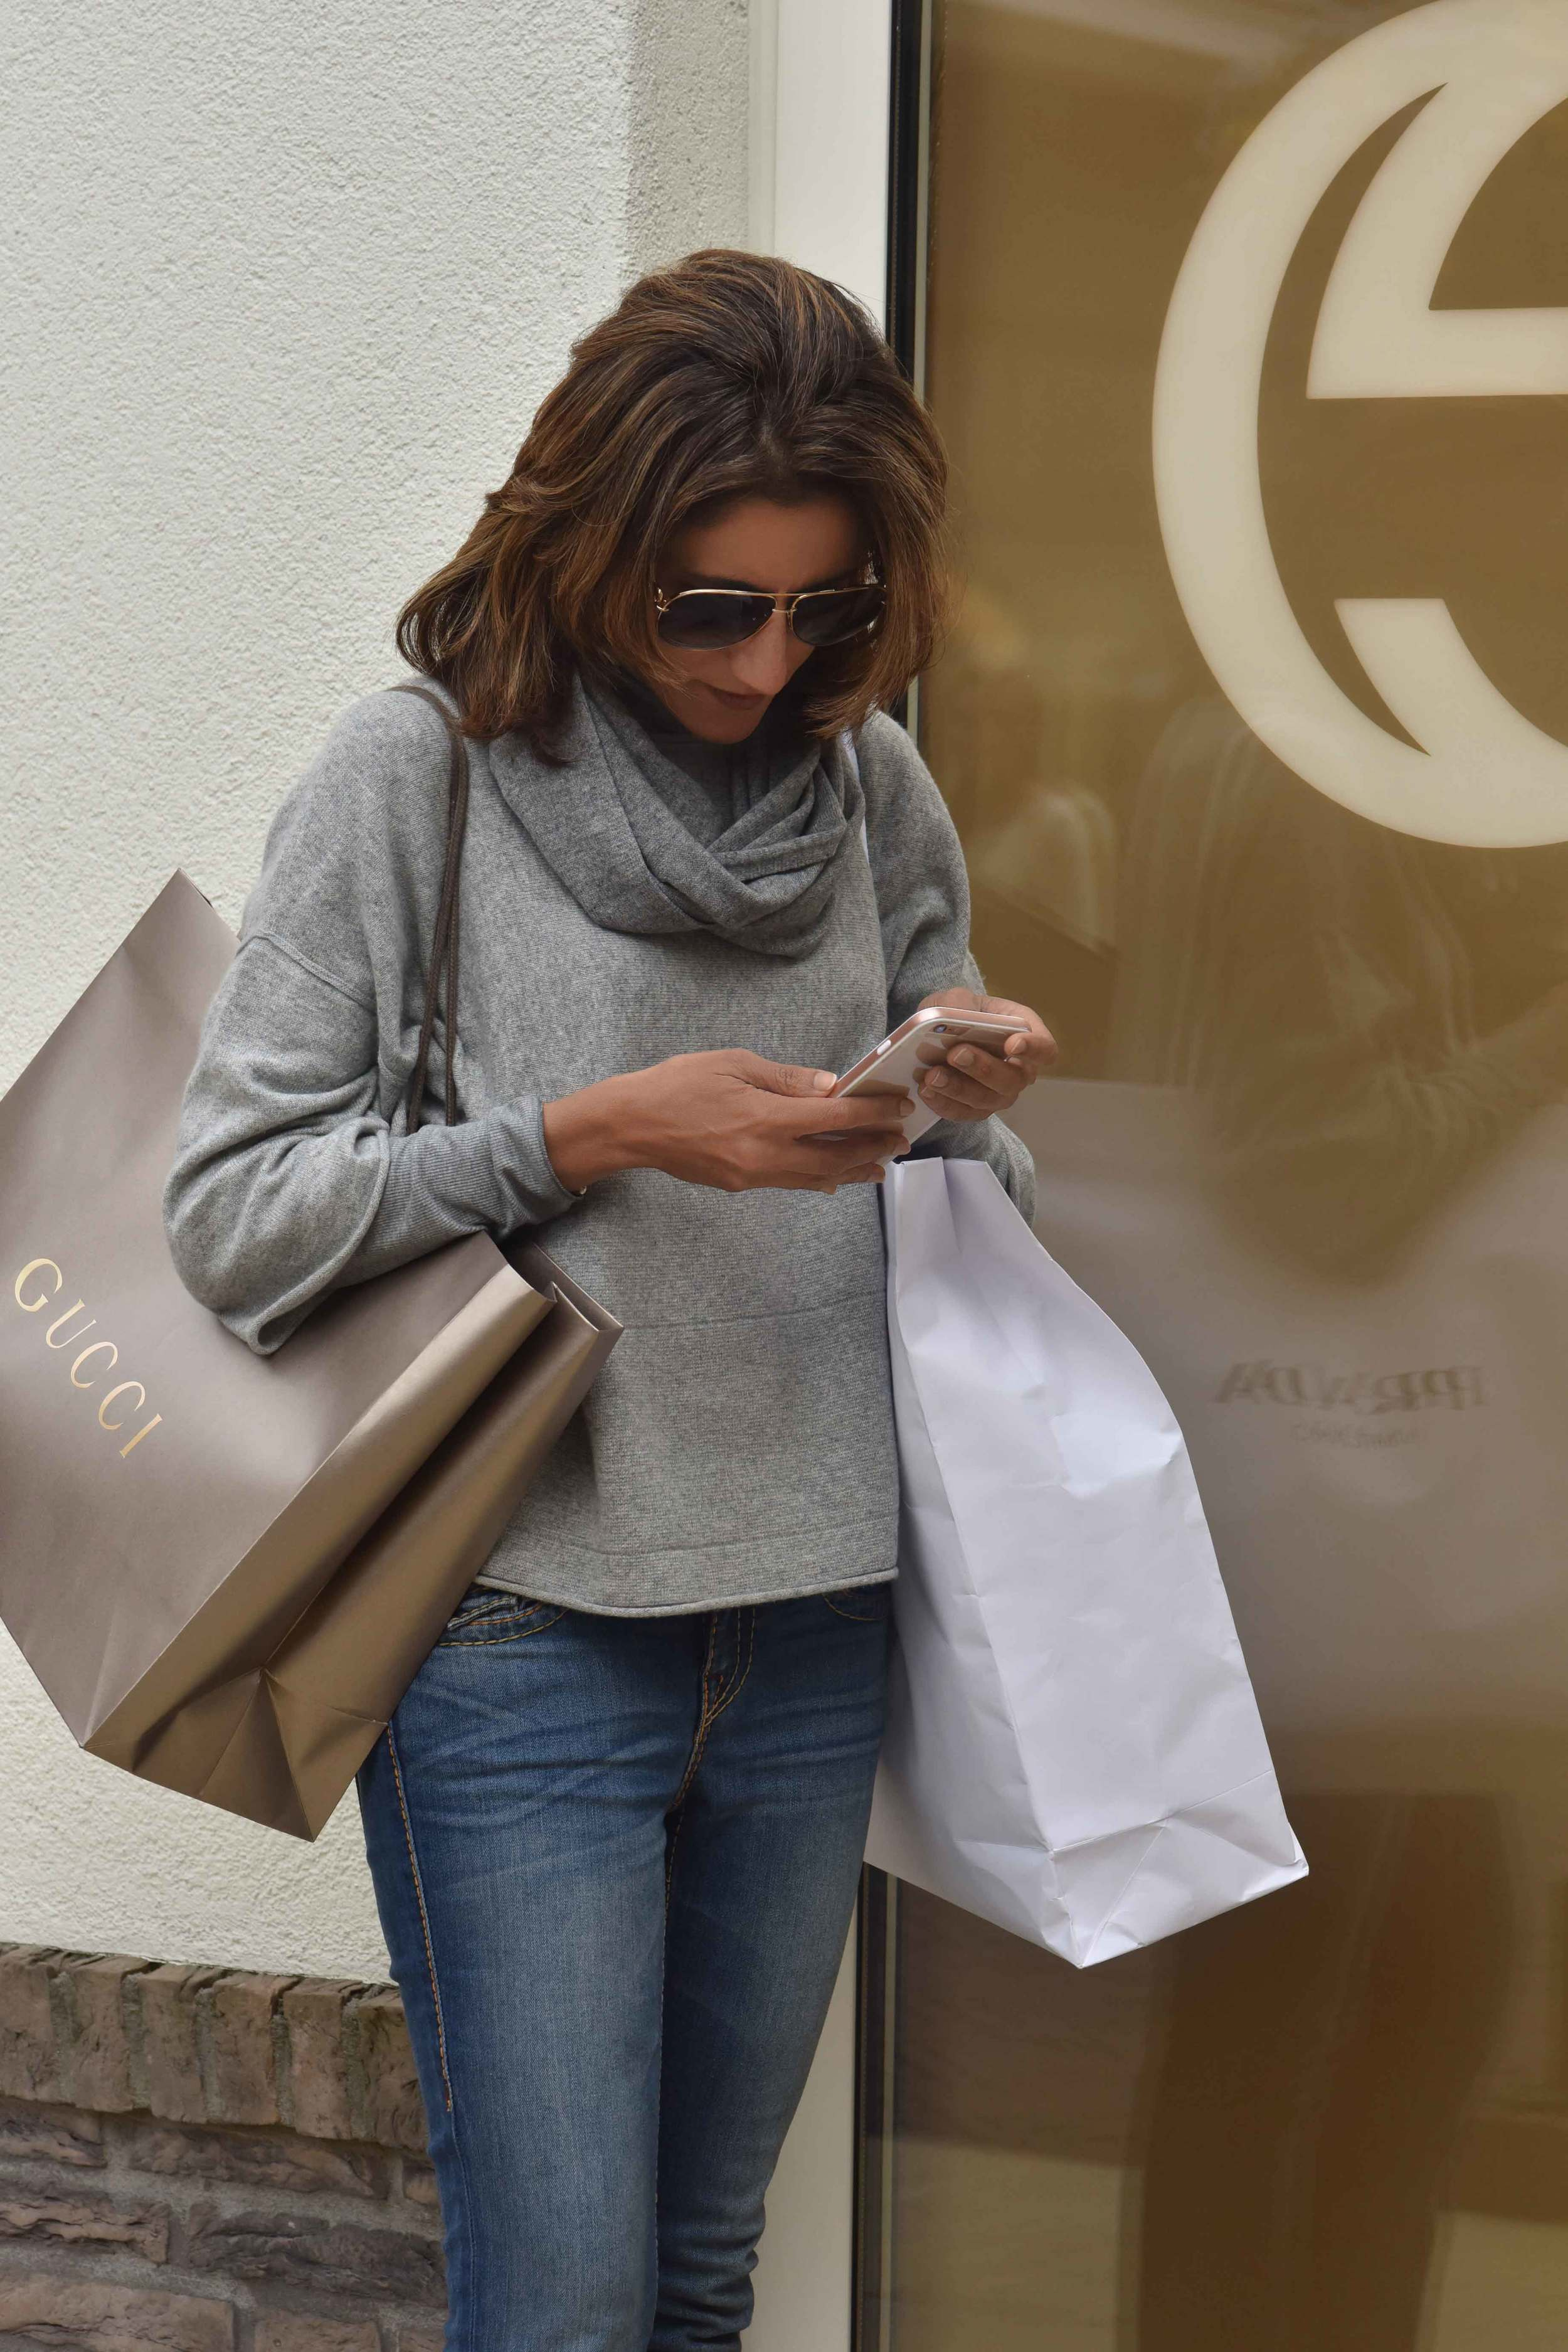 Outside Gucci store, Jjill cashmere kimono sweater, Jill cashmere infinity scarf, Designer Outlet Roermond, Netherlands. Photo: Nicola Nolting, image©sourcingstyle.com